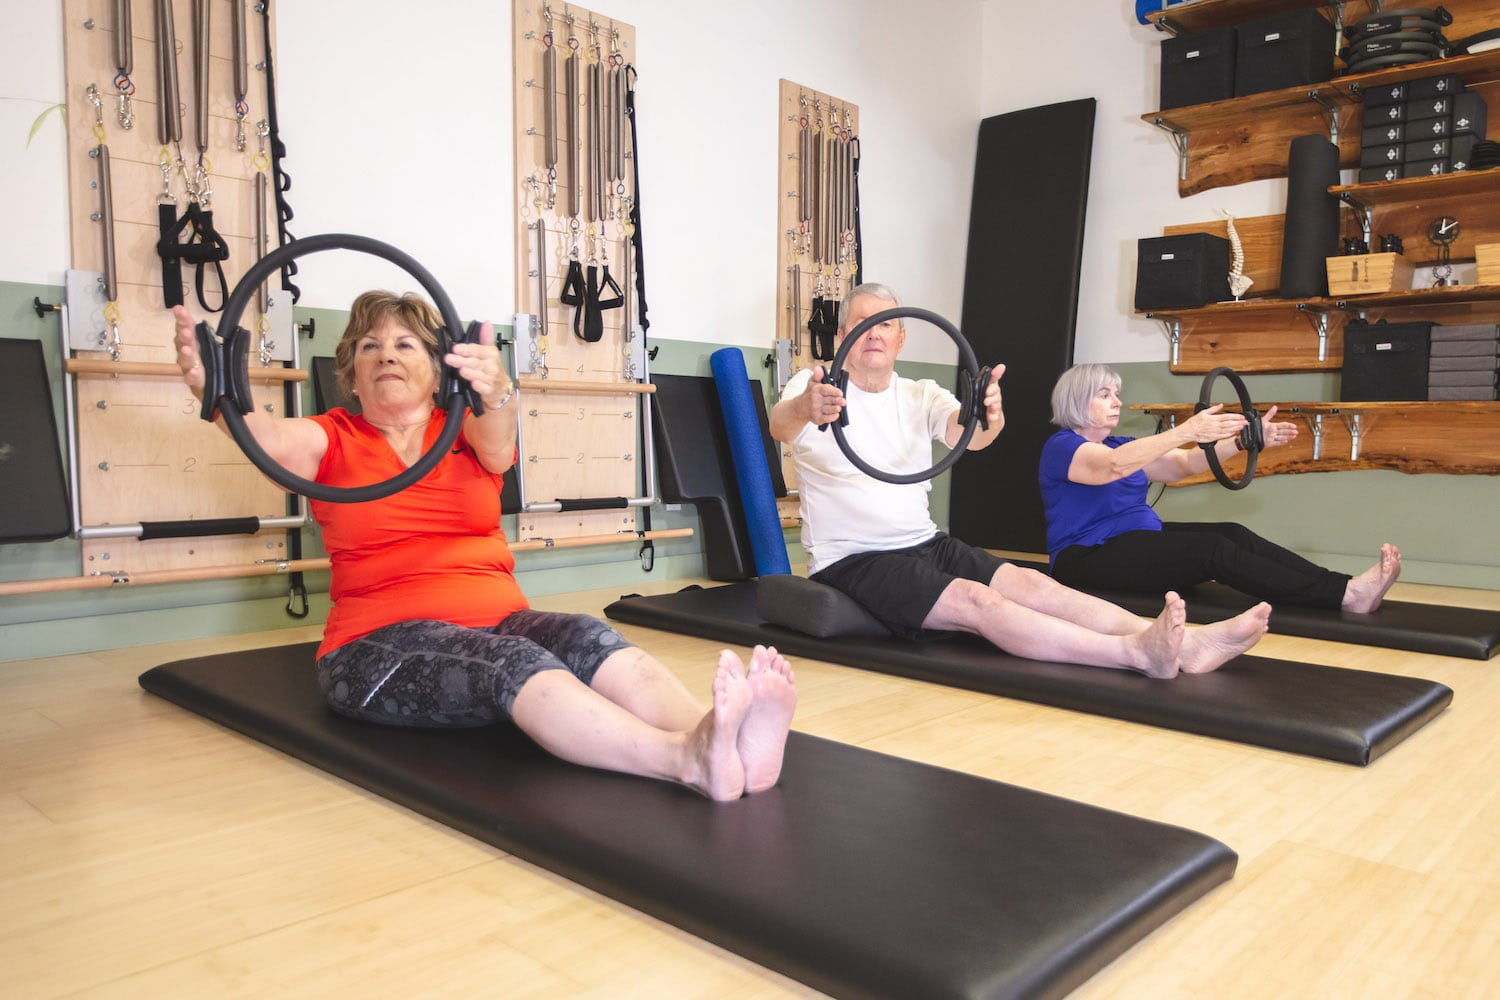 Retiree students in the studio doing an exercise